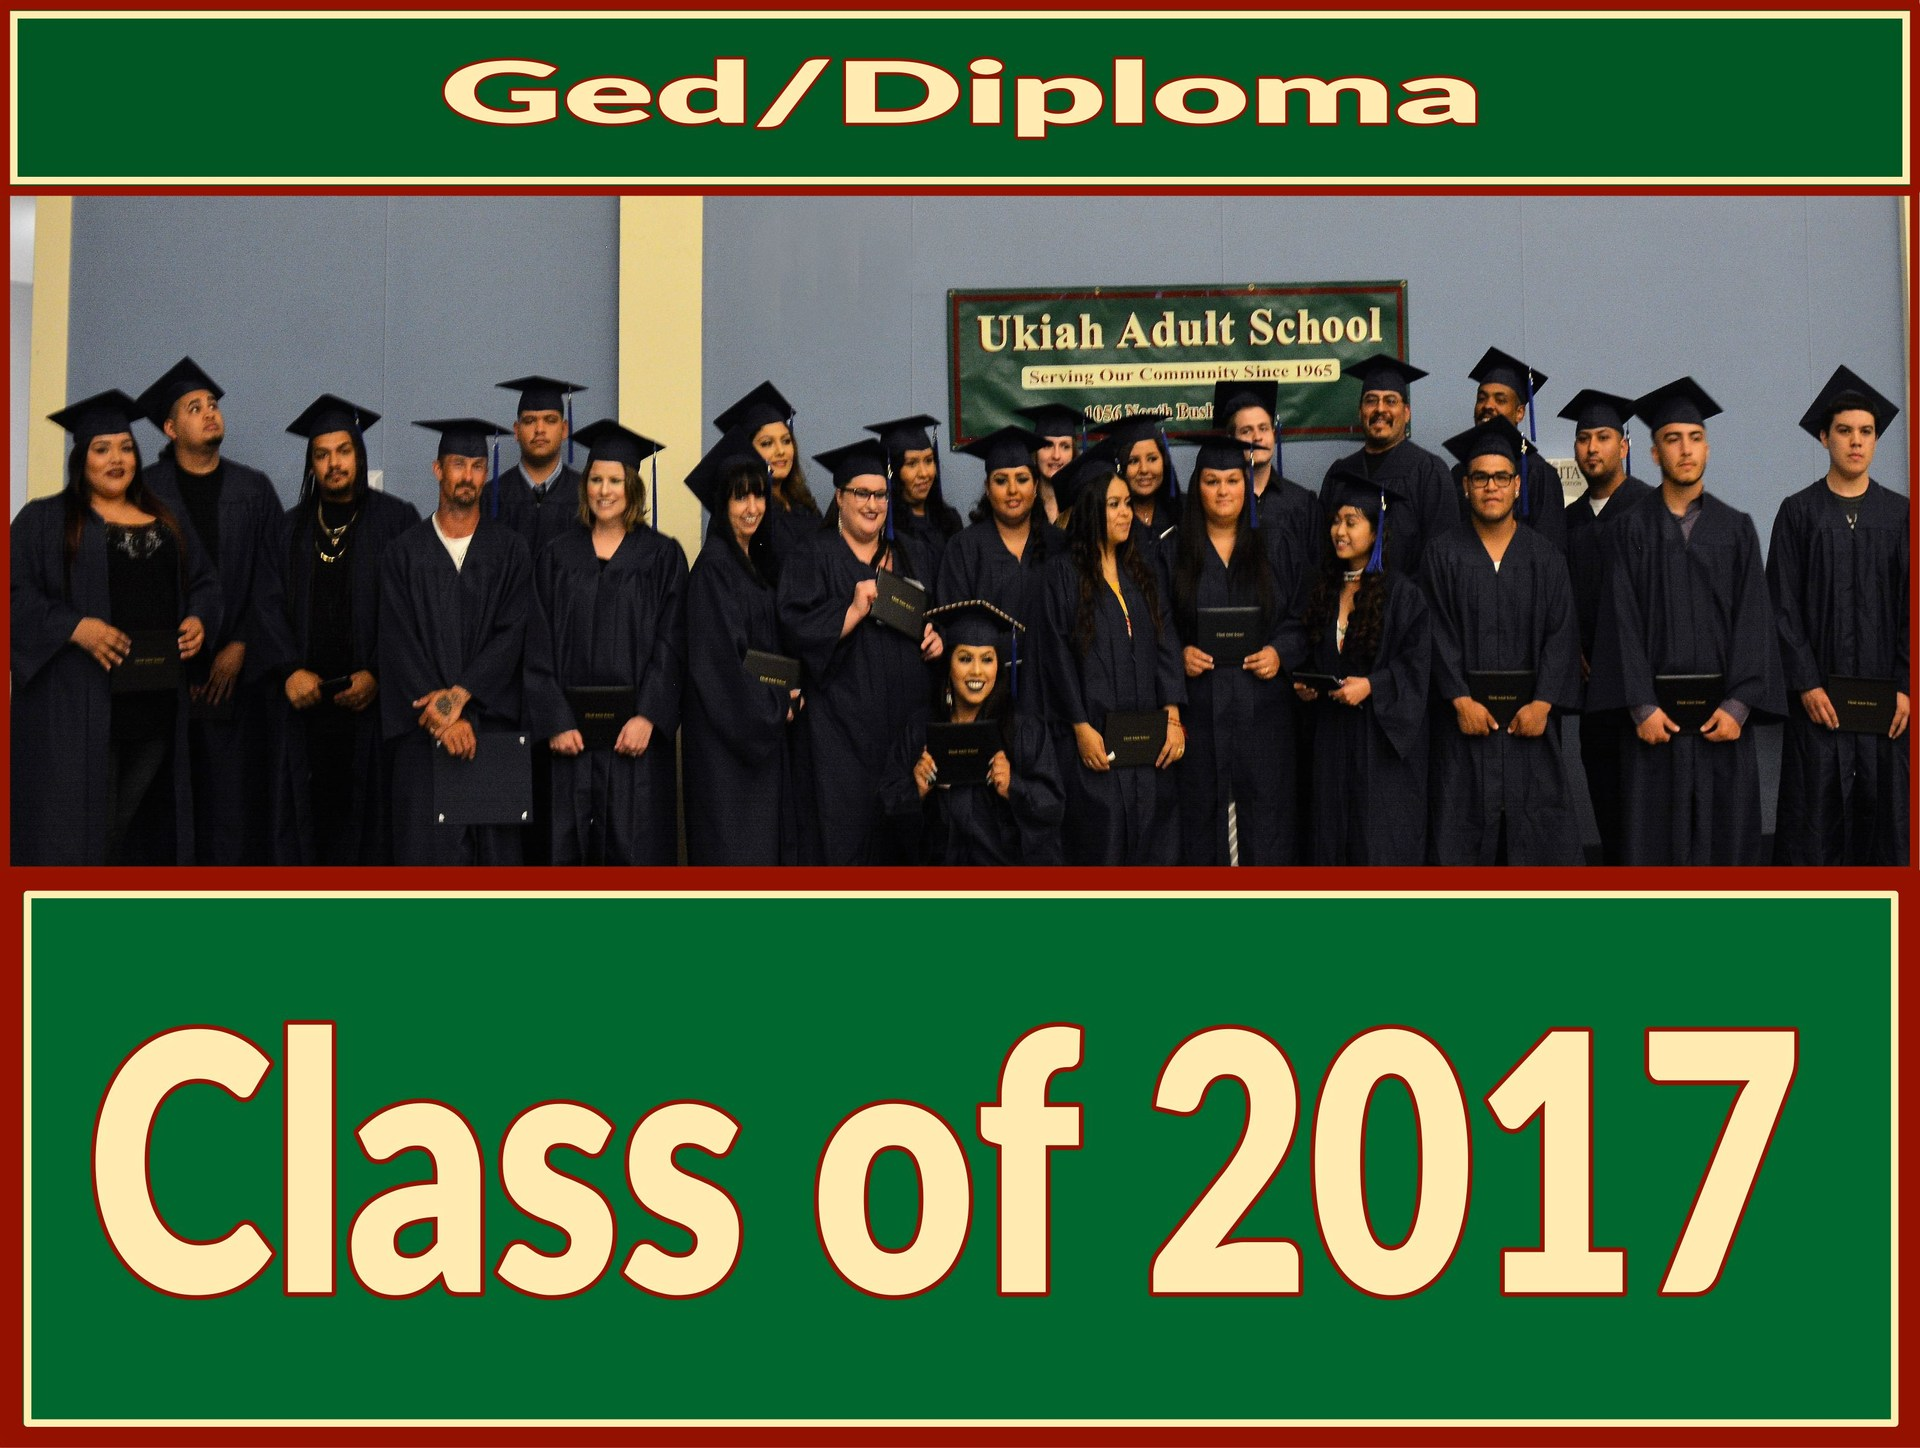 Image of the graduating class of 2017.